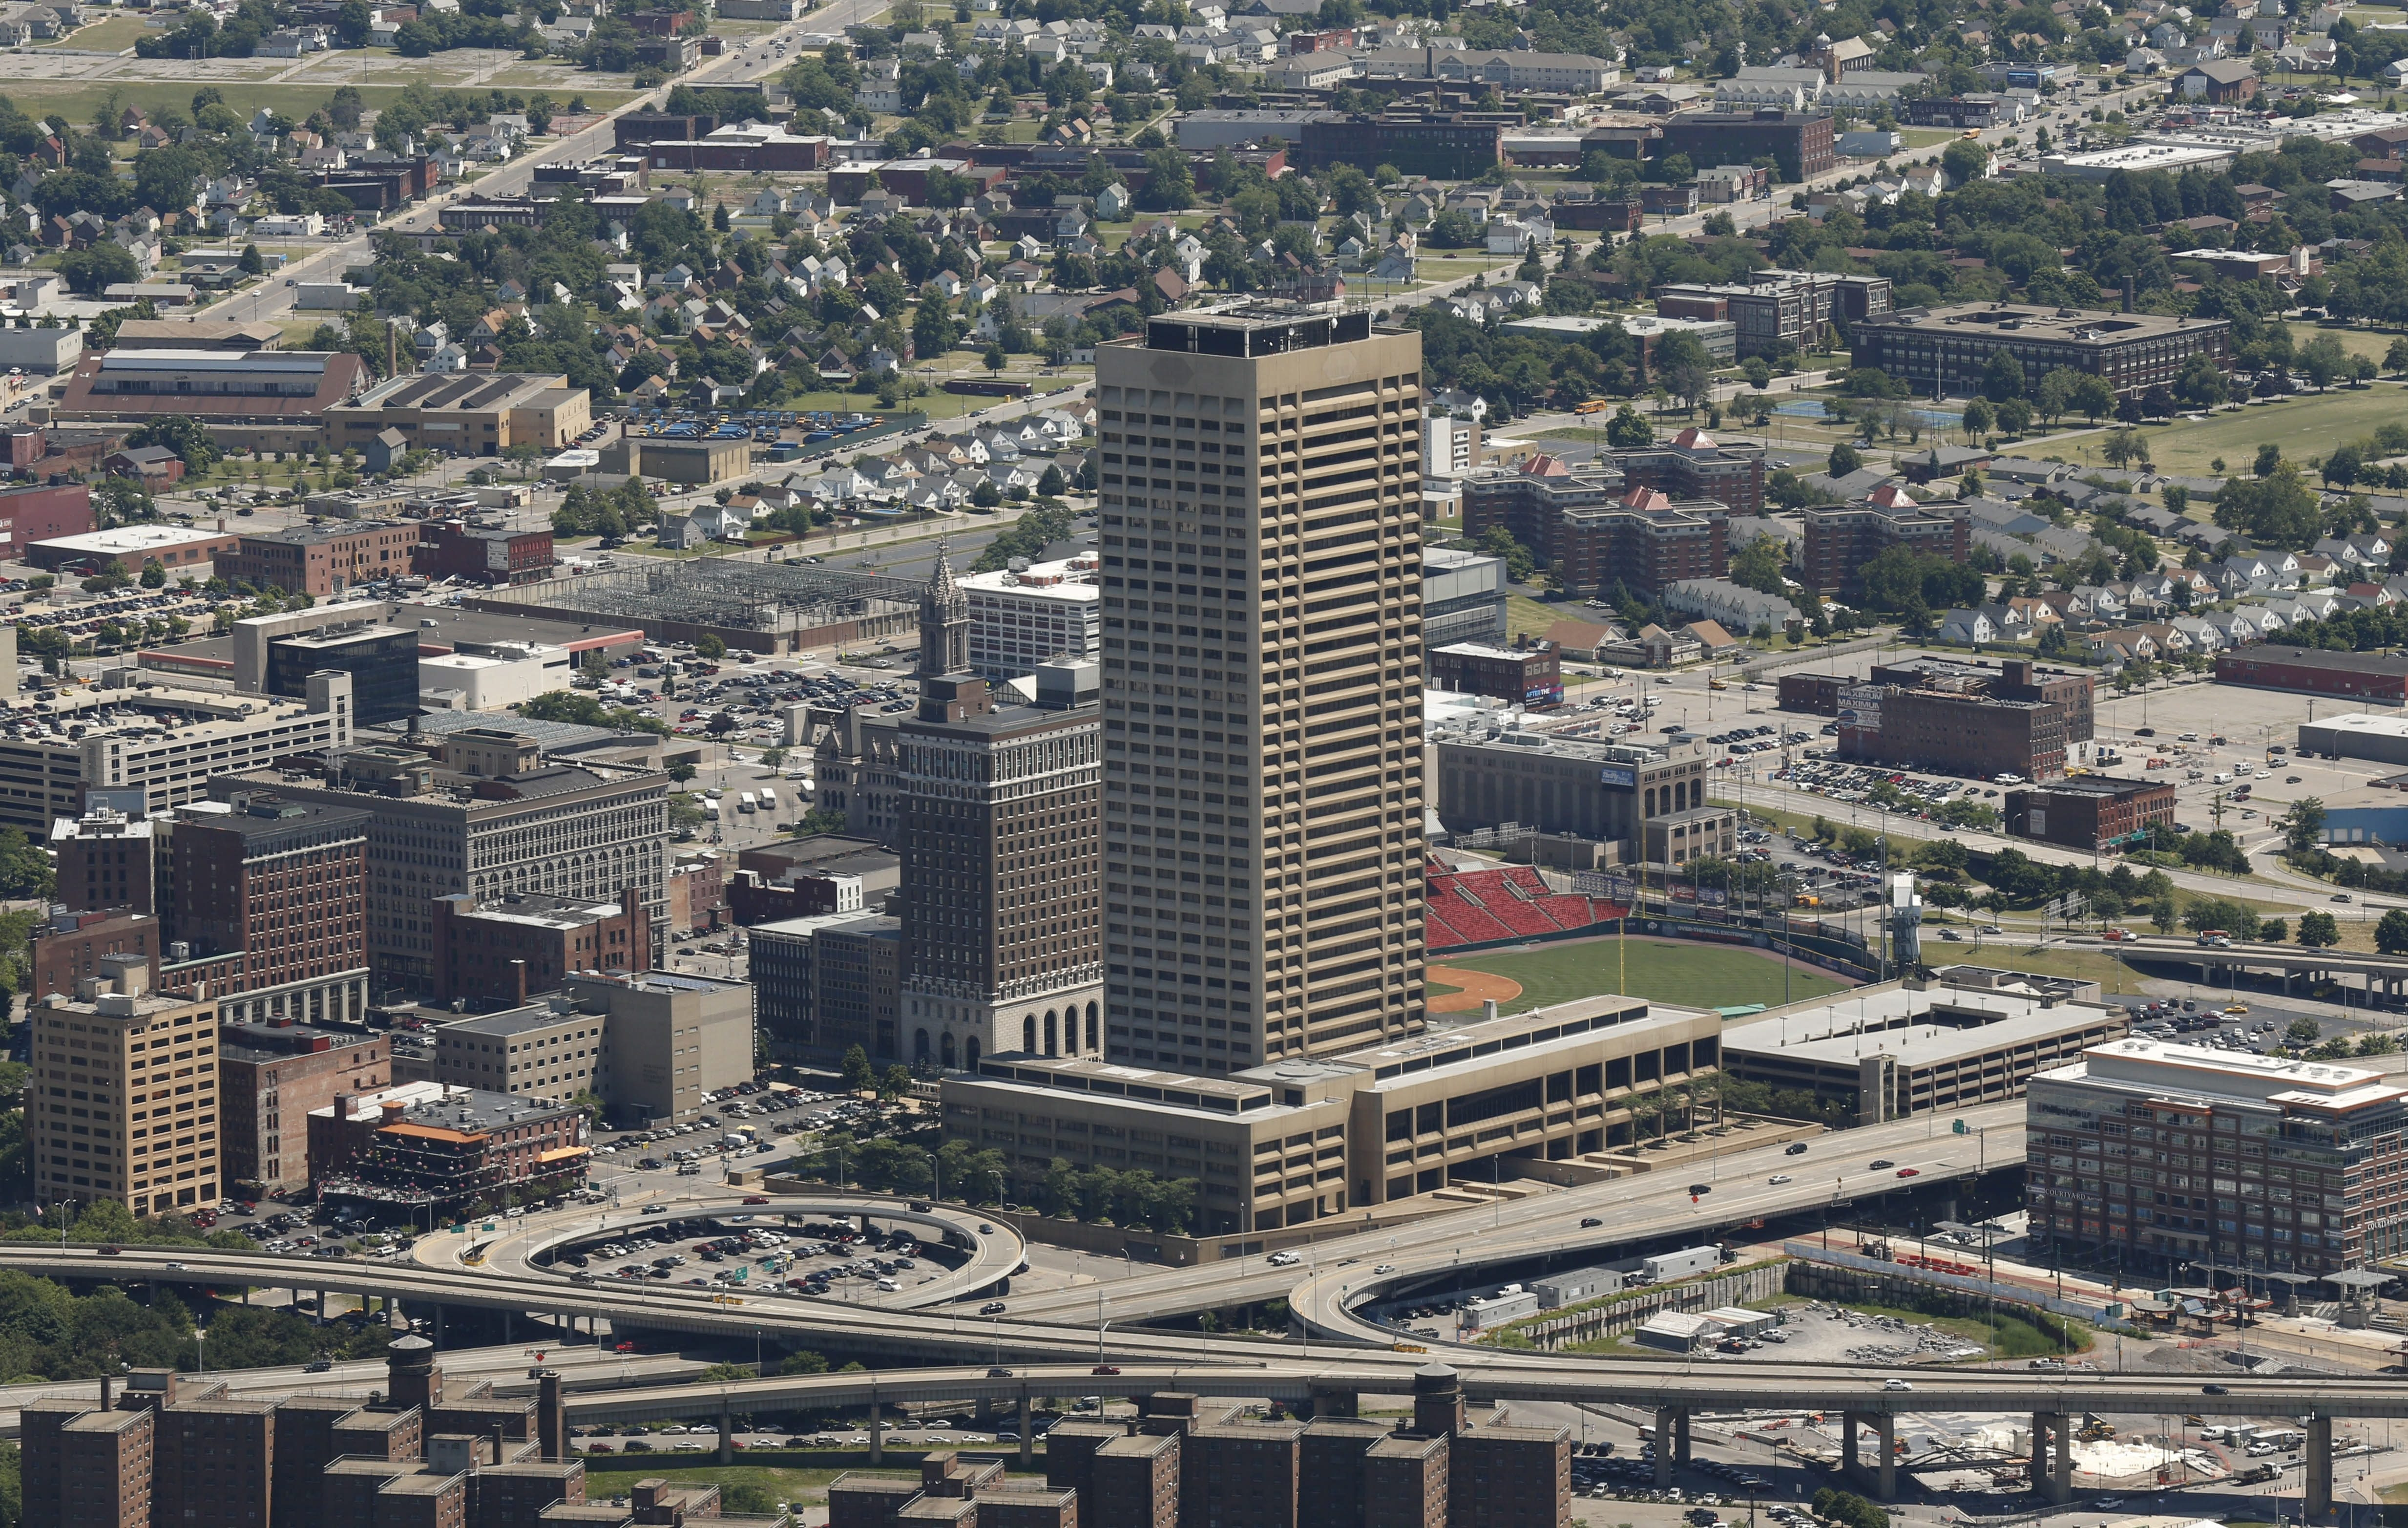 Phillip Ruthen says he's prepared to invest up to $150 million to revamp One Seneca Tower into a mixed-use complex.